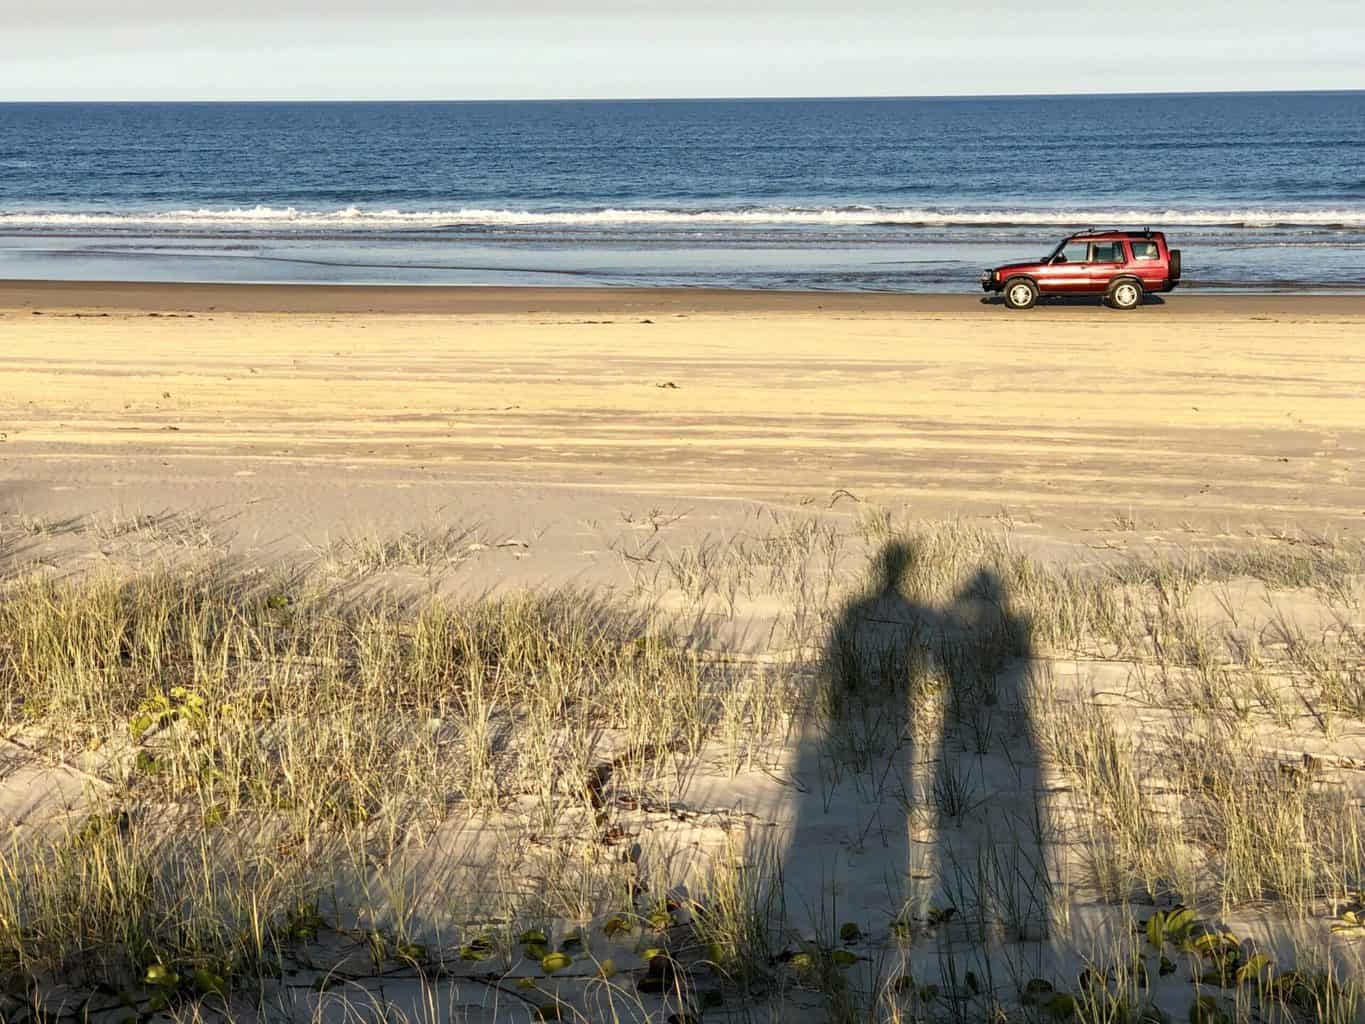 4WD Landrover on beach scaled e1608184793779